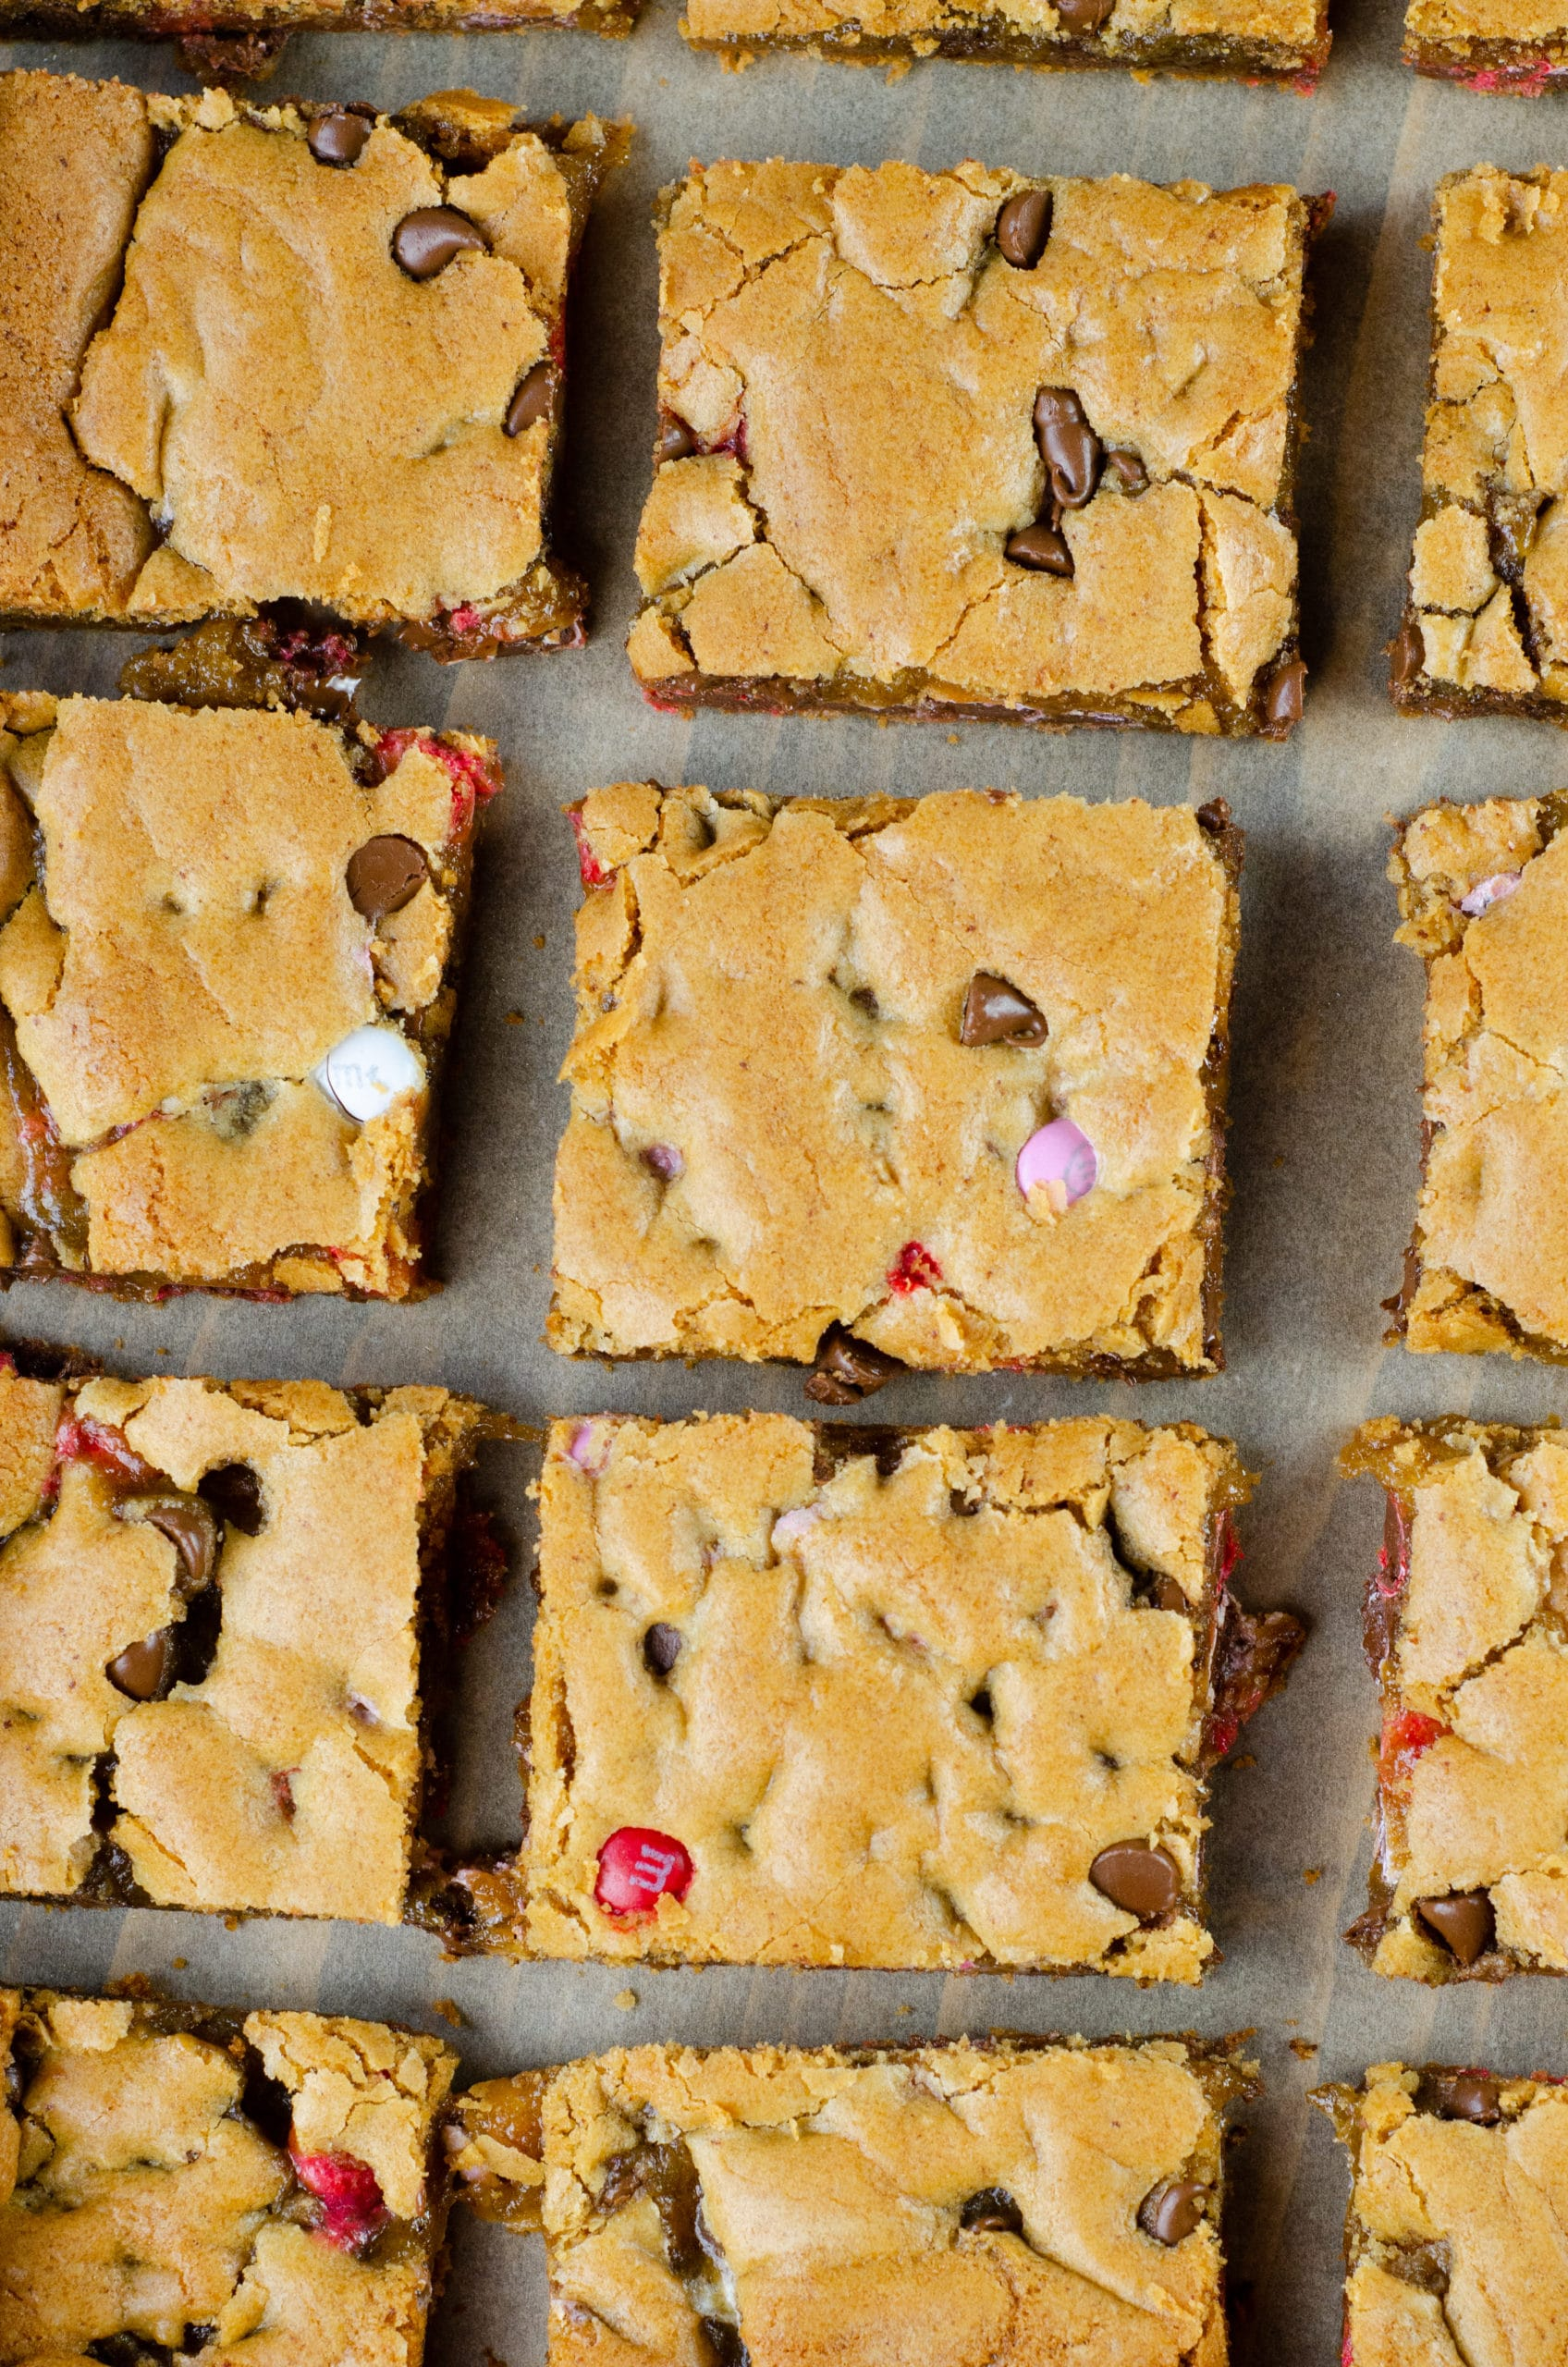 Browned Butter M&M Blondies Bars. These Valentine's day themed Browned Butter M&M Blondies are the perfect way to say I heart you to someone special. I love to bake them for my little ones year-round. They are so chewy and chocolatey they make it easy for me to look like a master dessert chef.